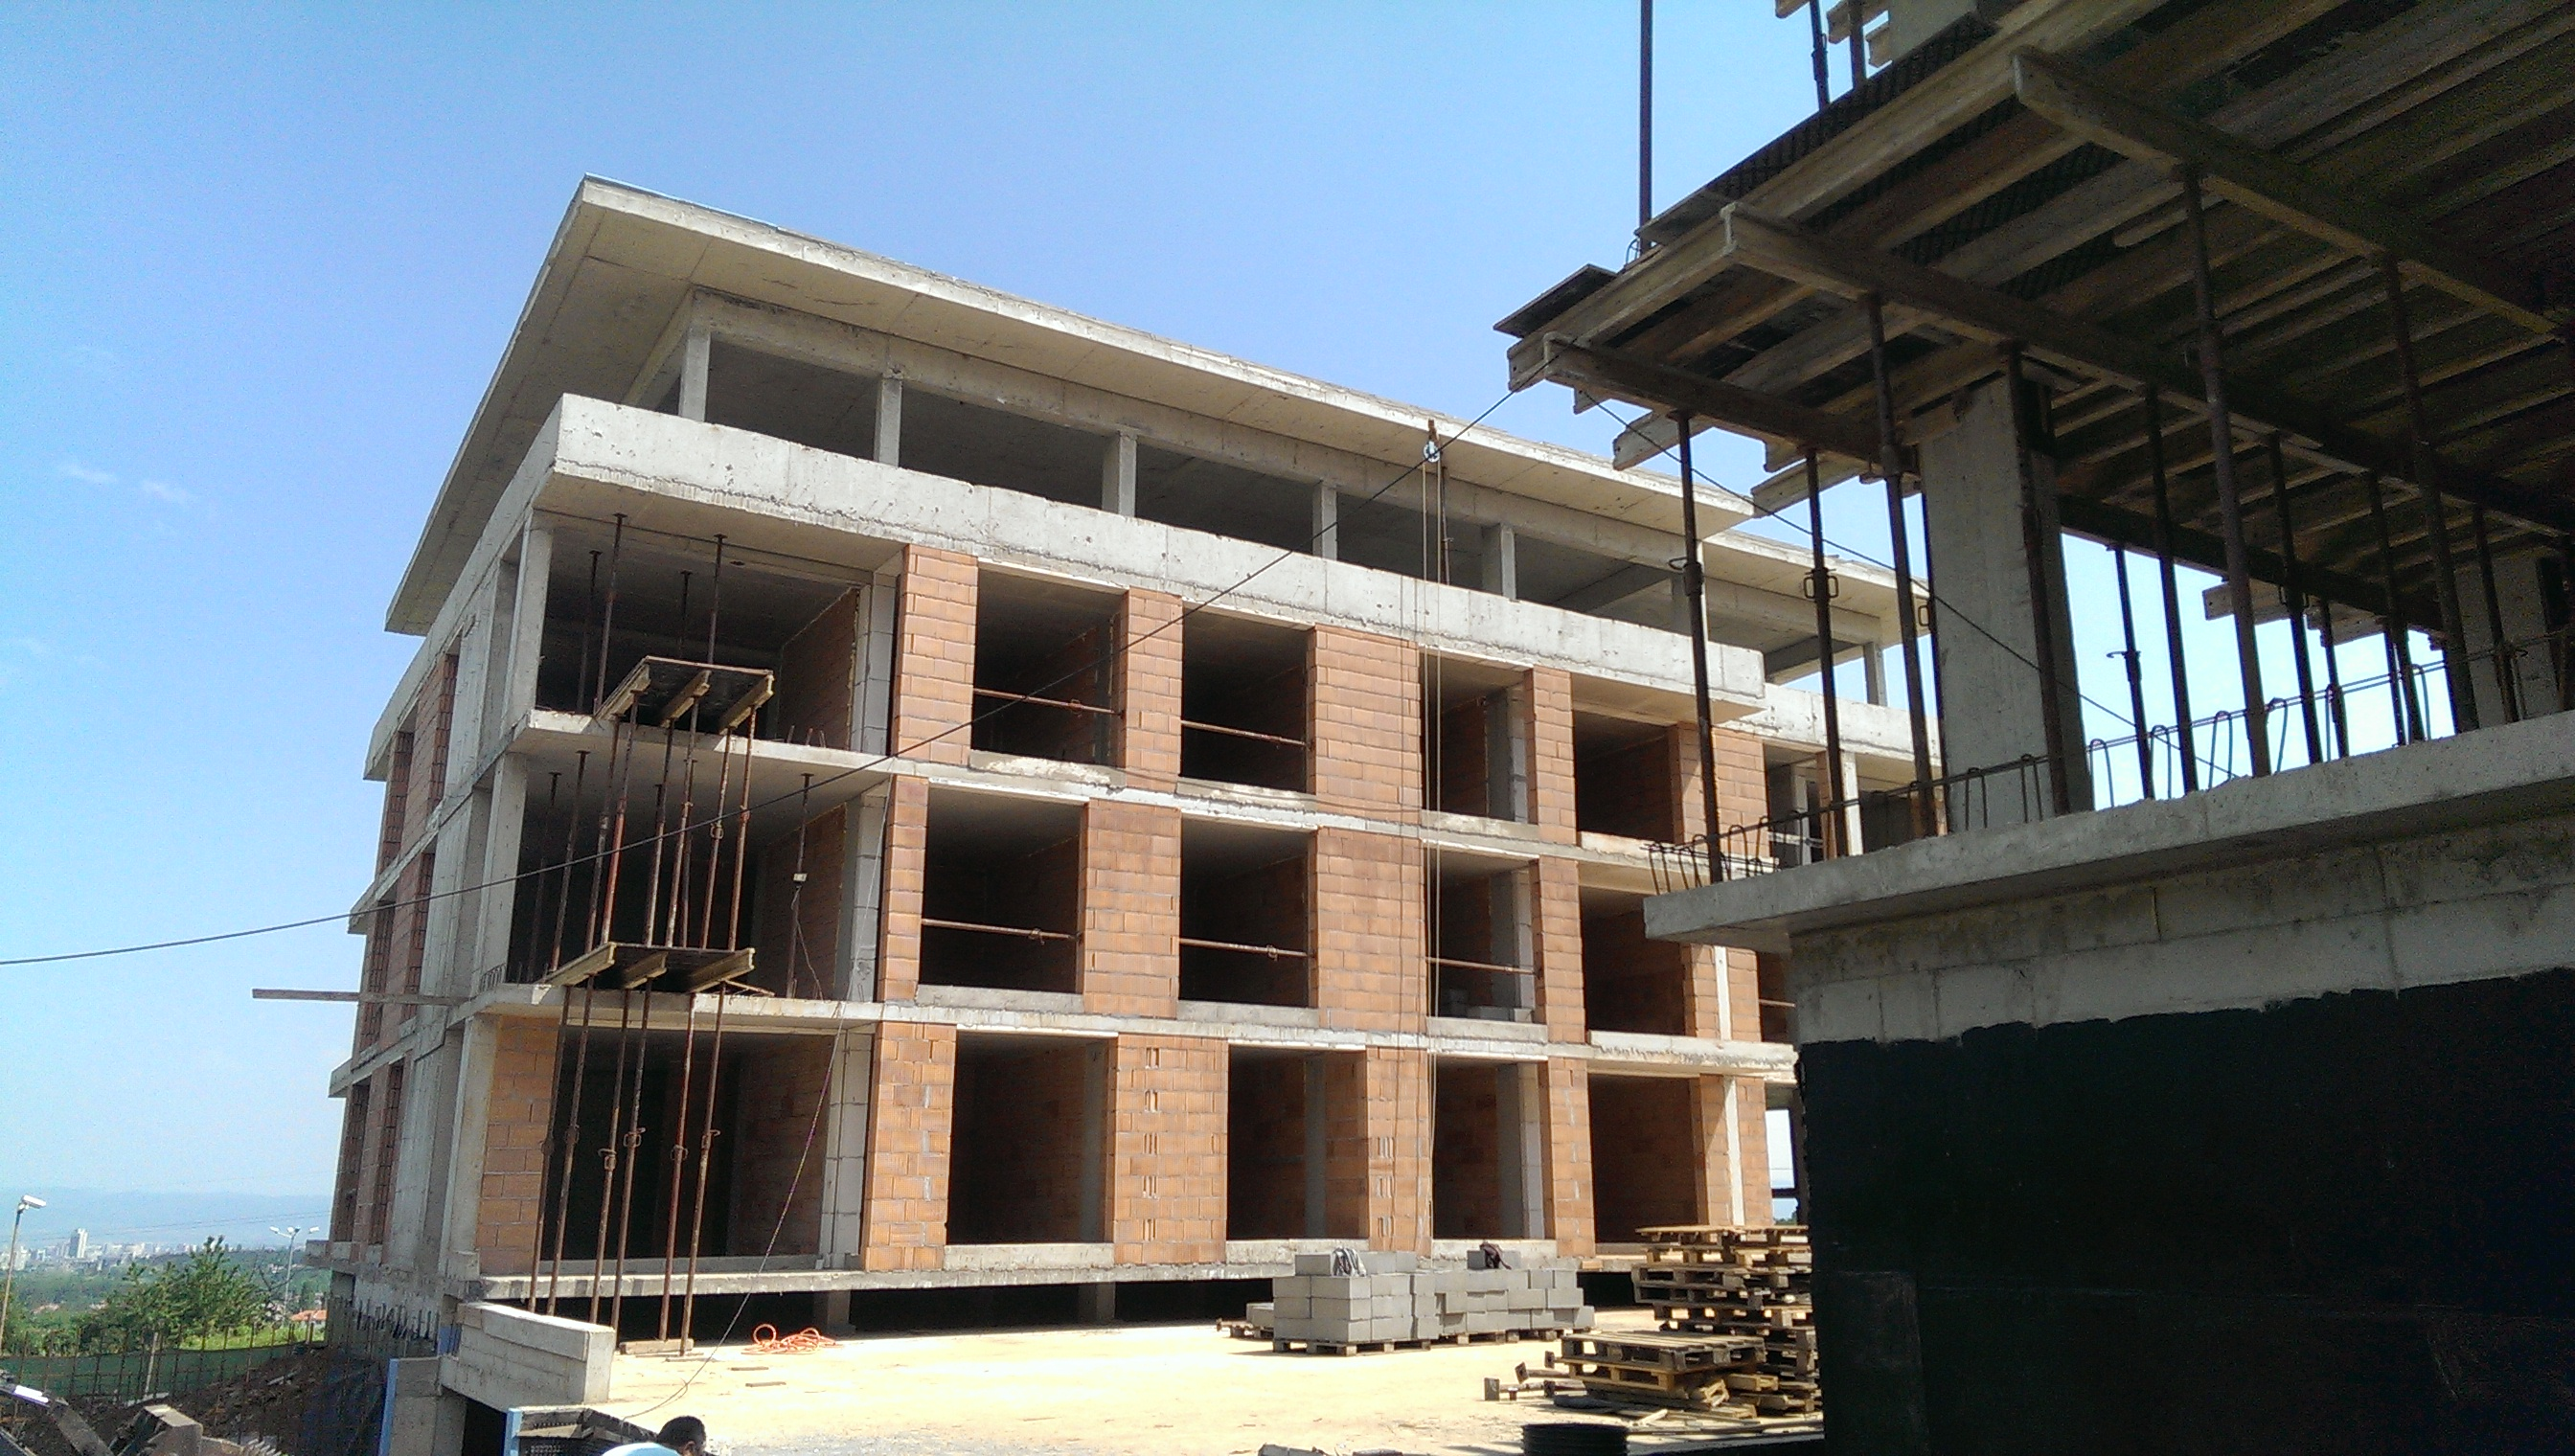 construction 23.05.2015 Building 5